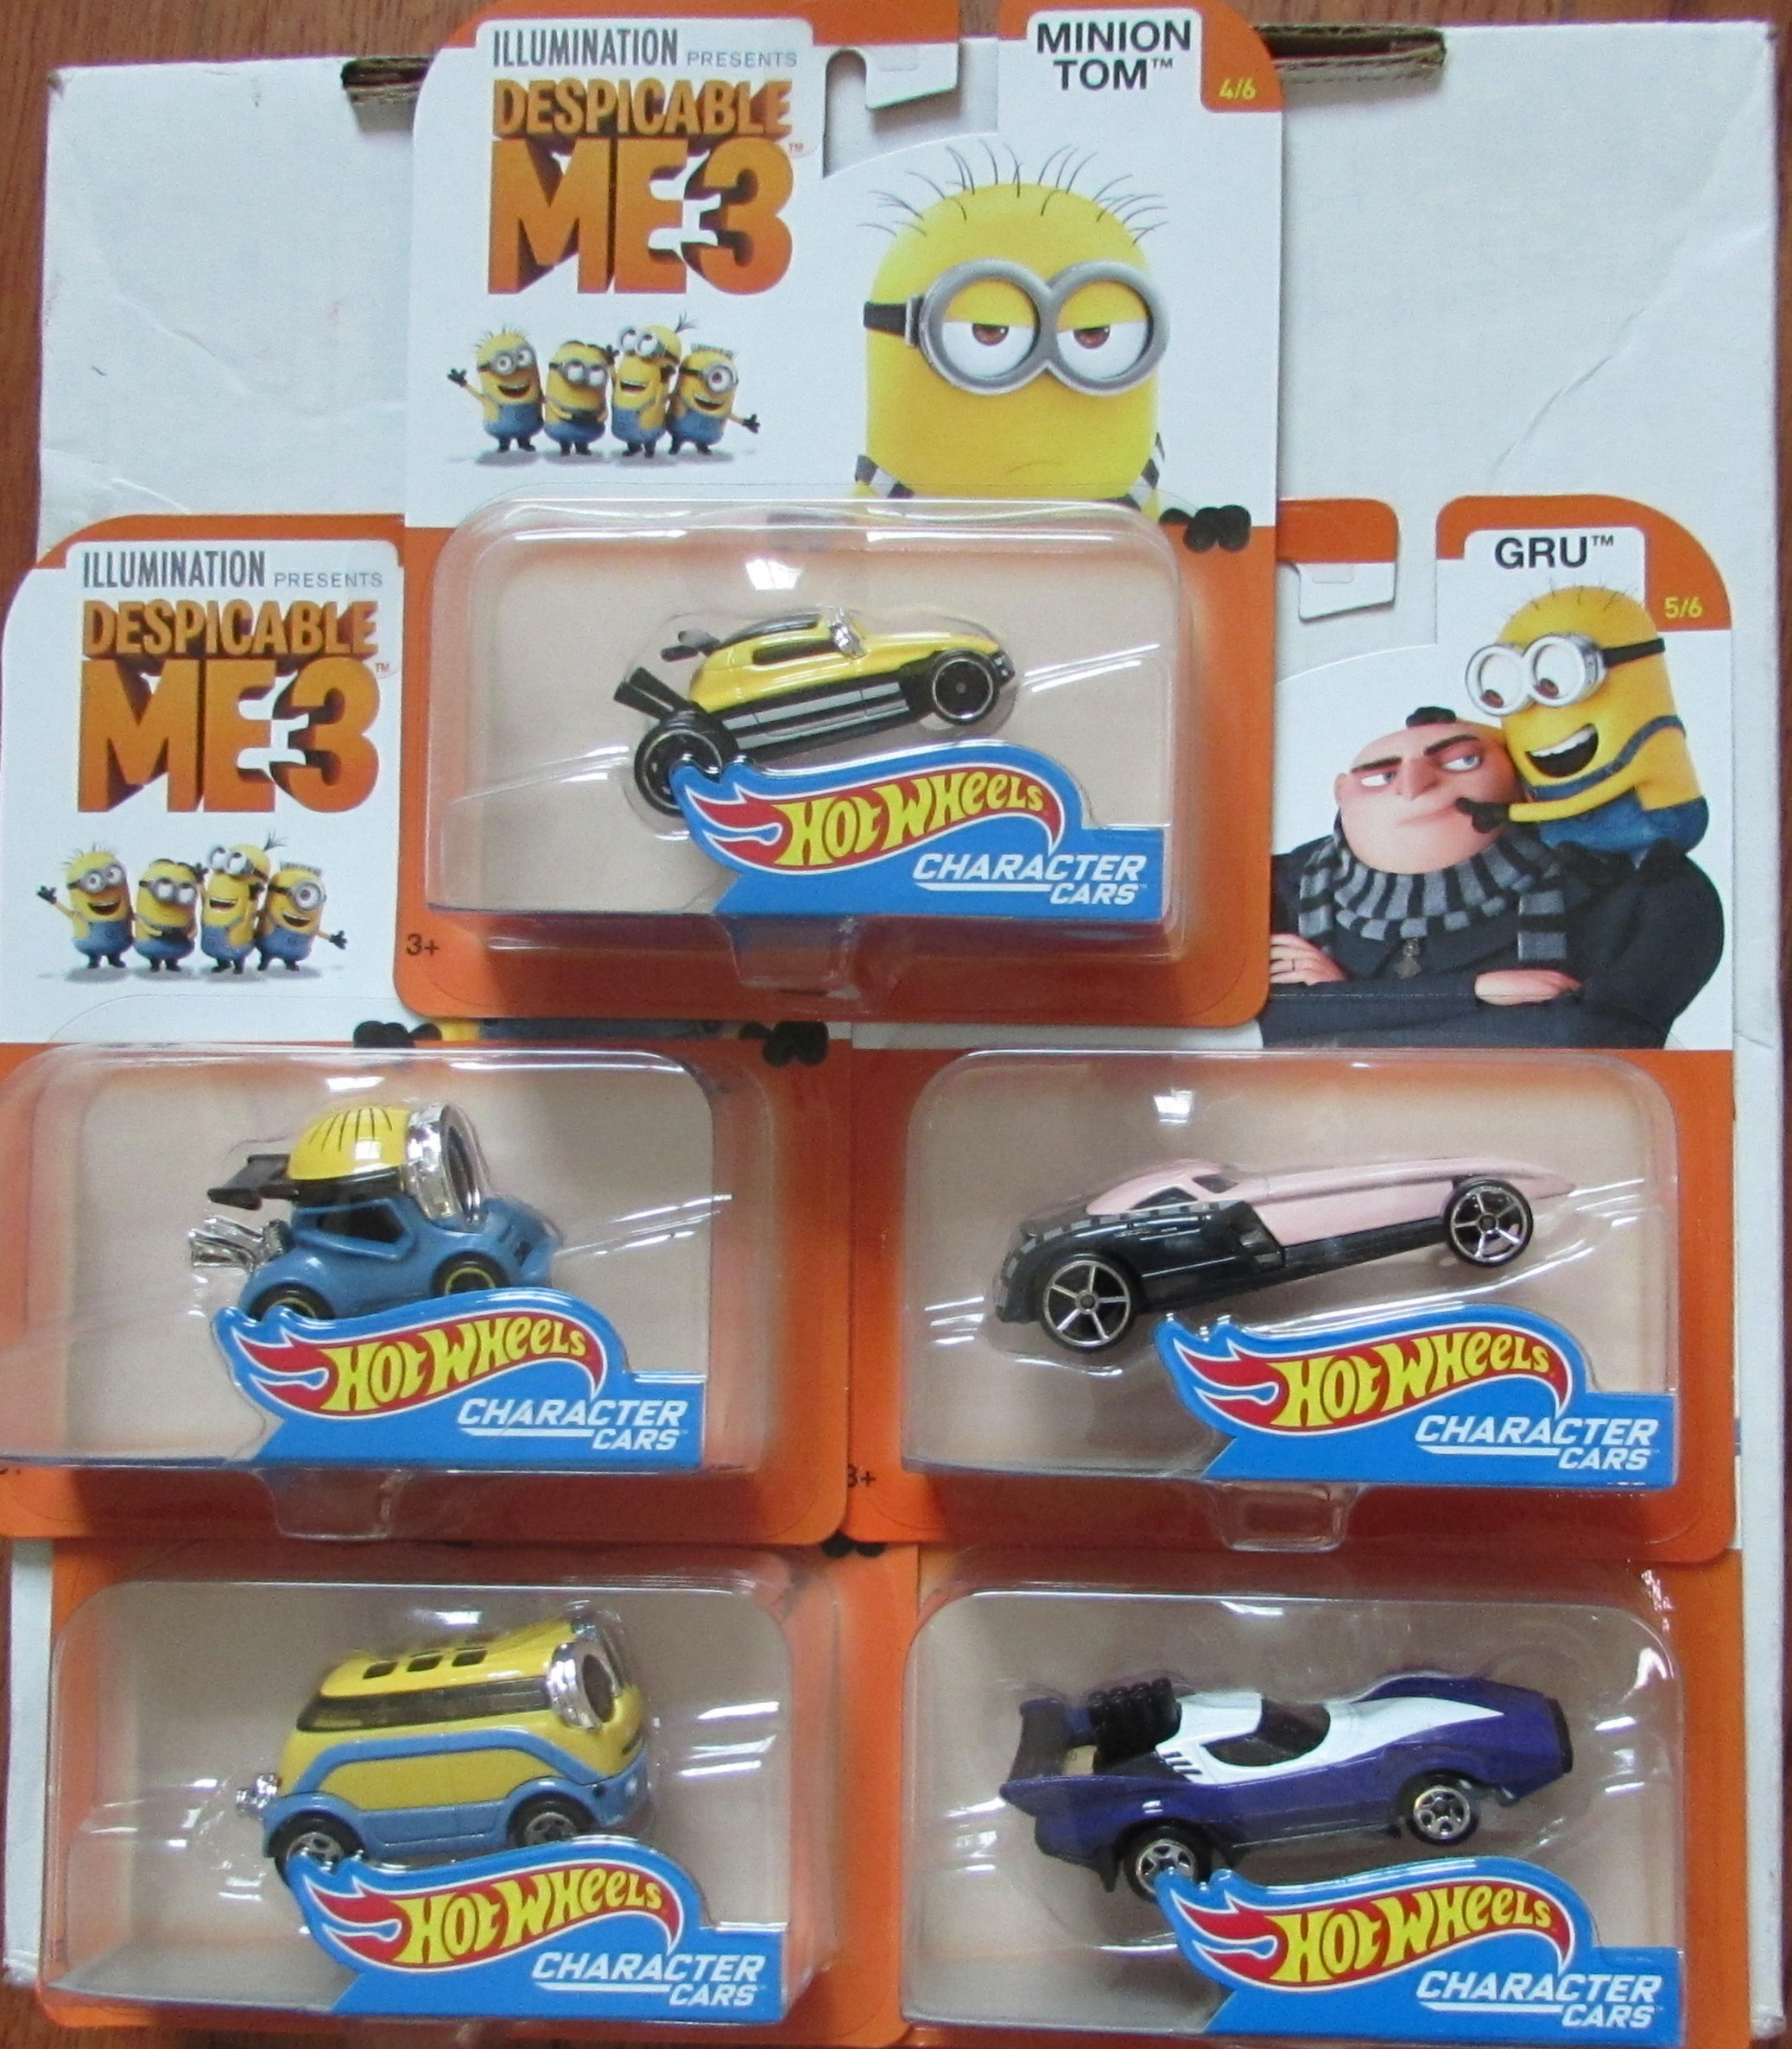 HOT WHEELS 2017 ILLUMINATION DESPICABLE ME 3 COMPLETE SET OF 5